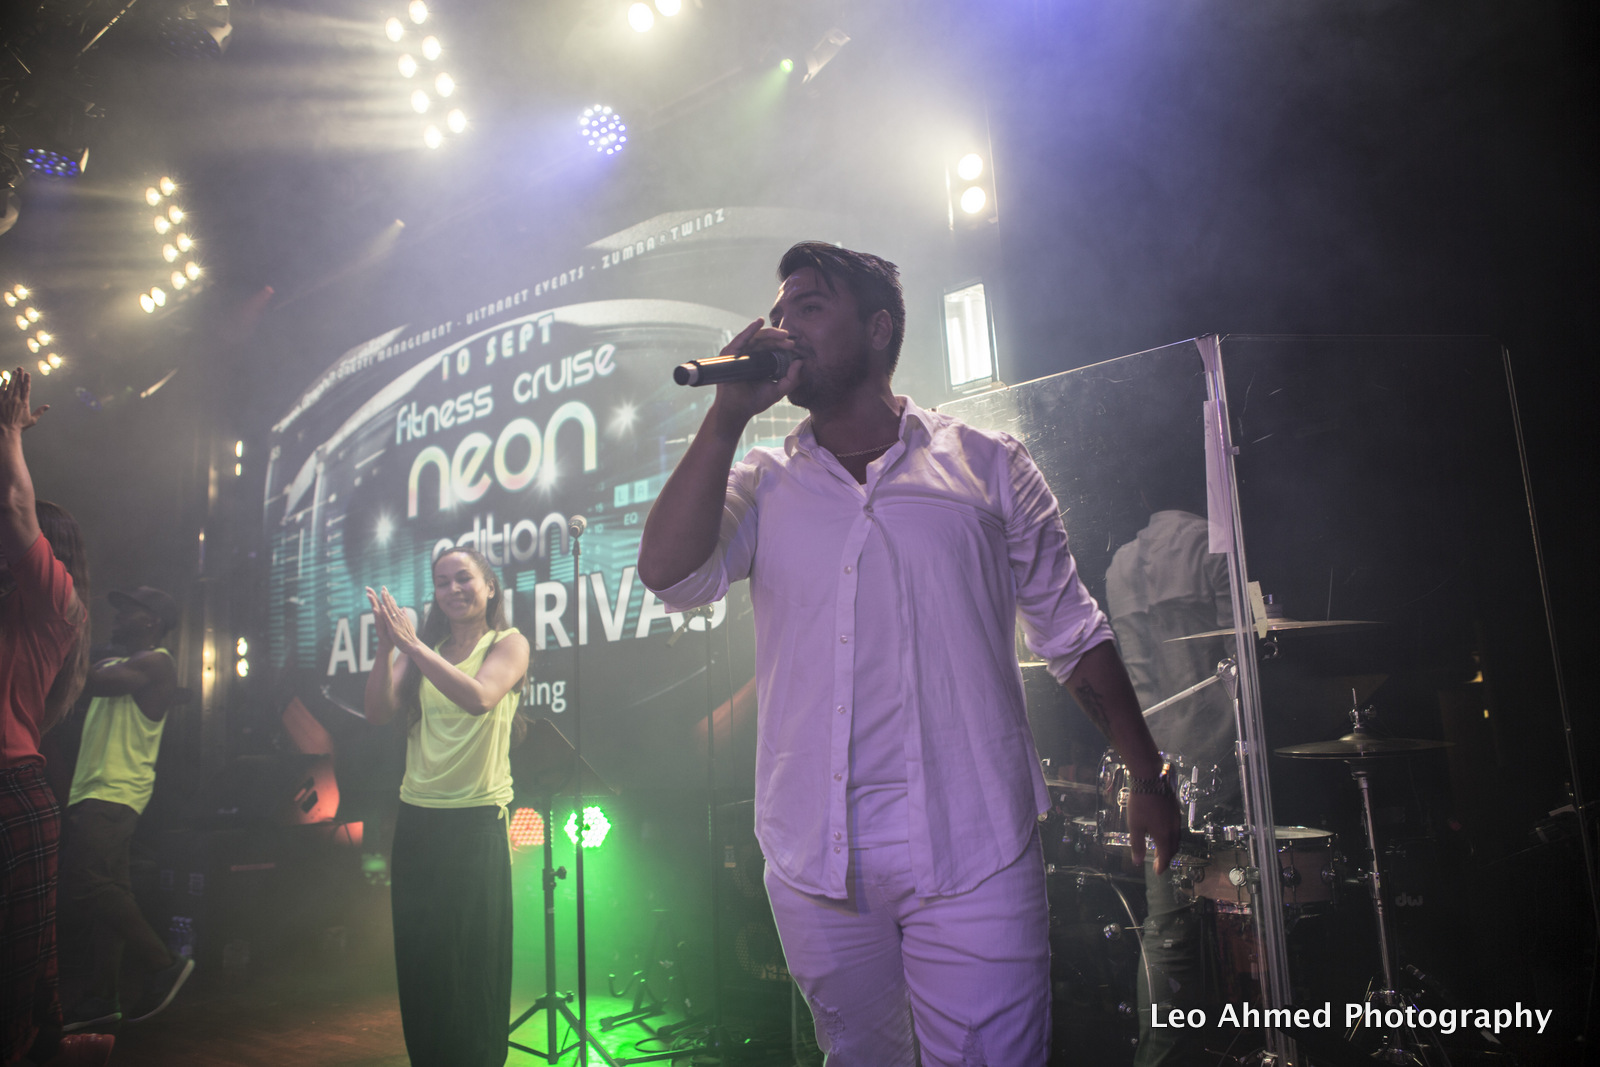 075-LeoAhmed0916a_31